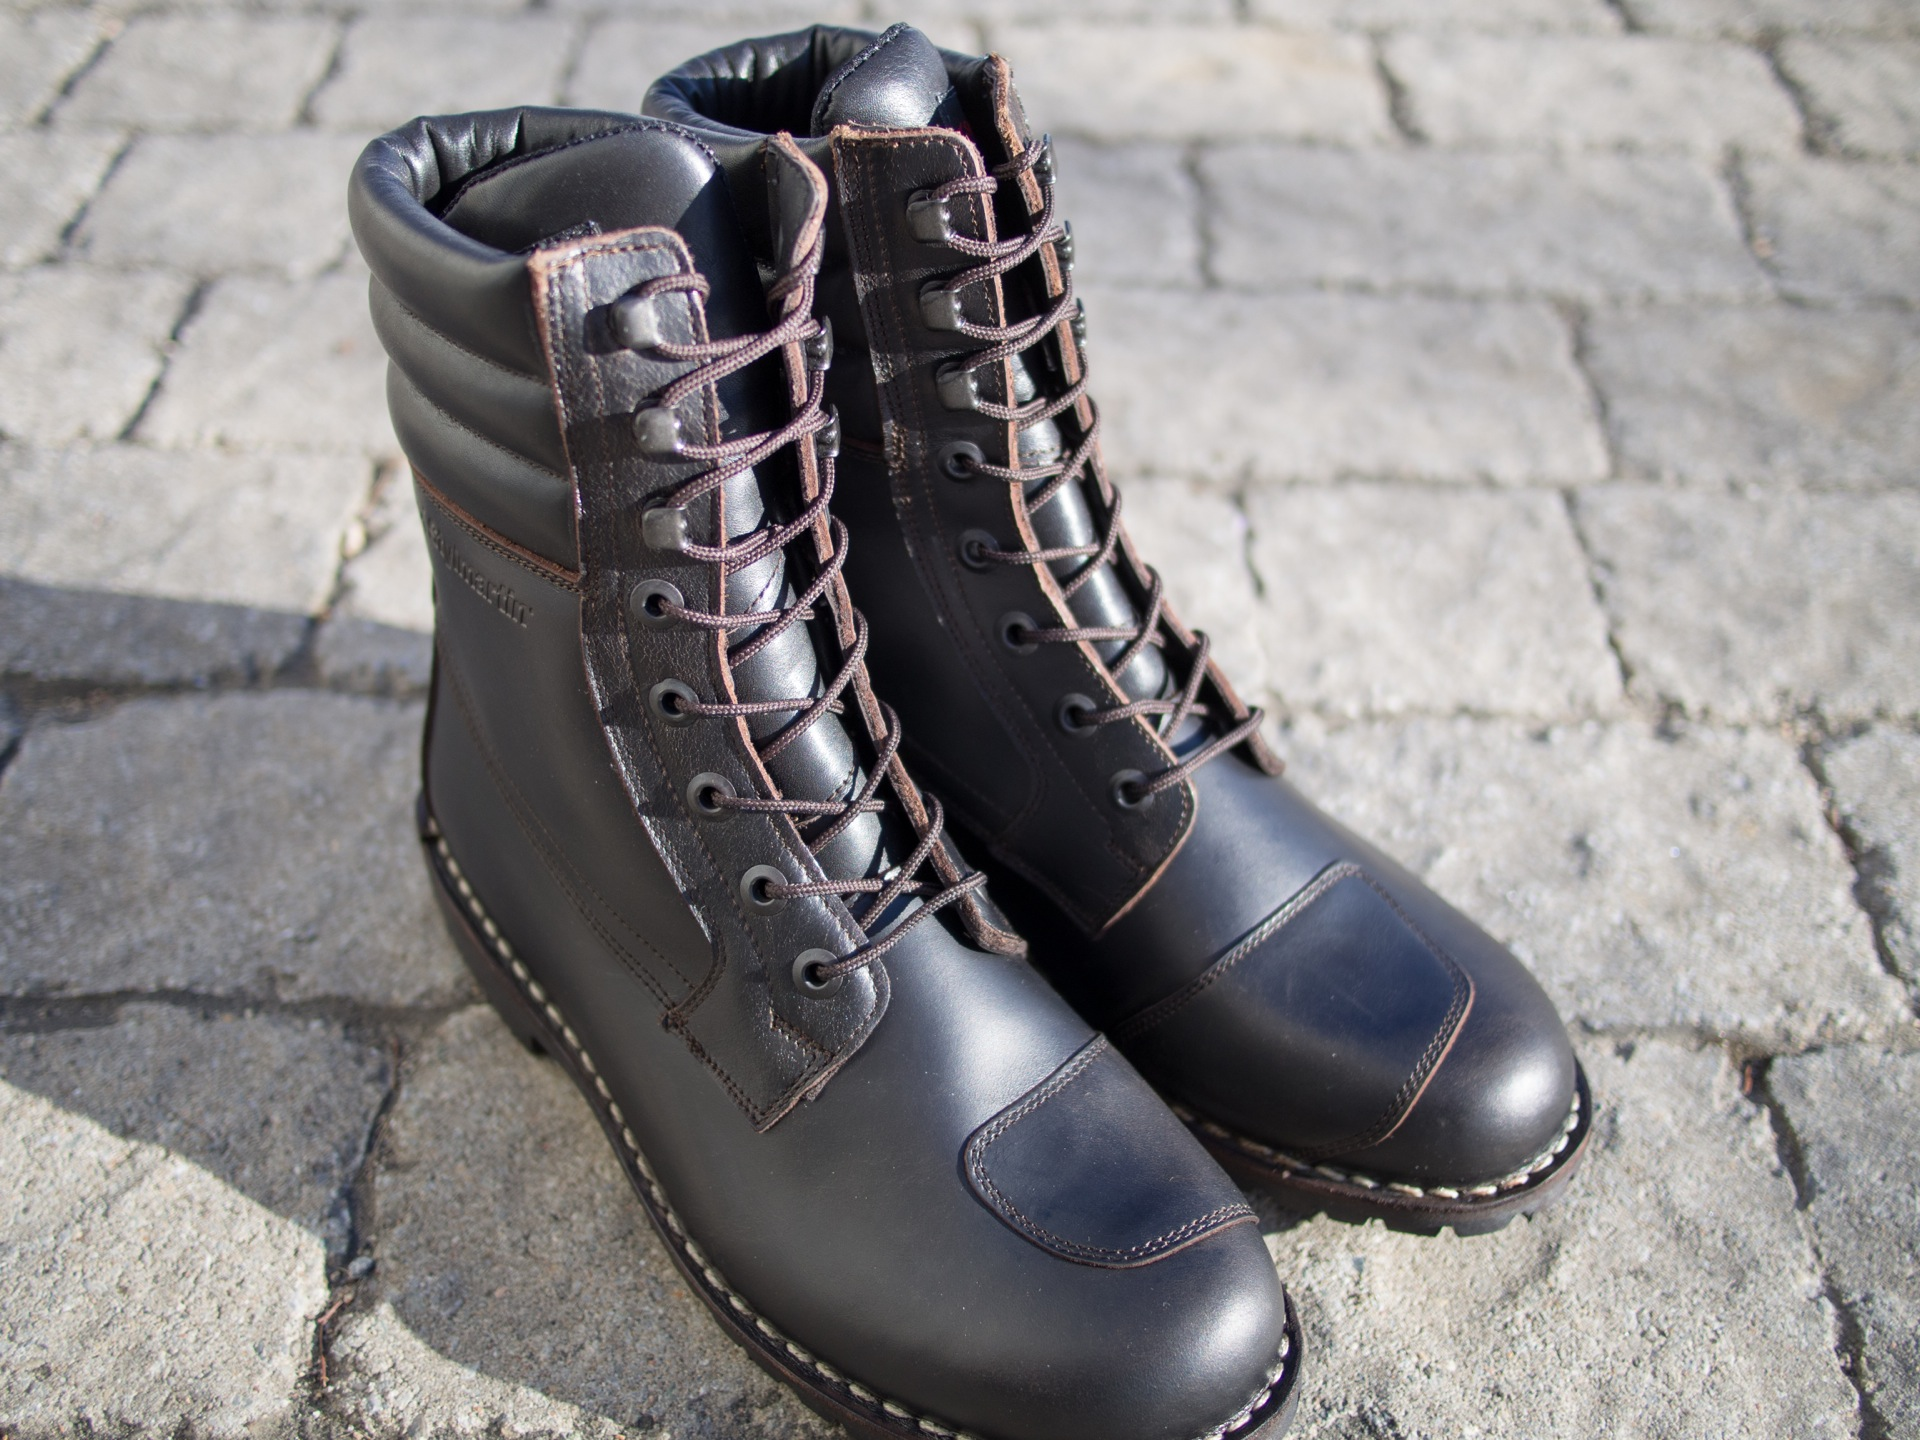 494e93ce5343 Stylmartin Indian Boots